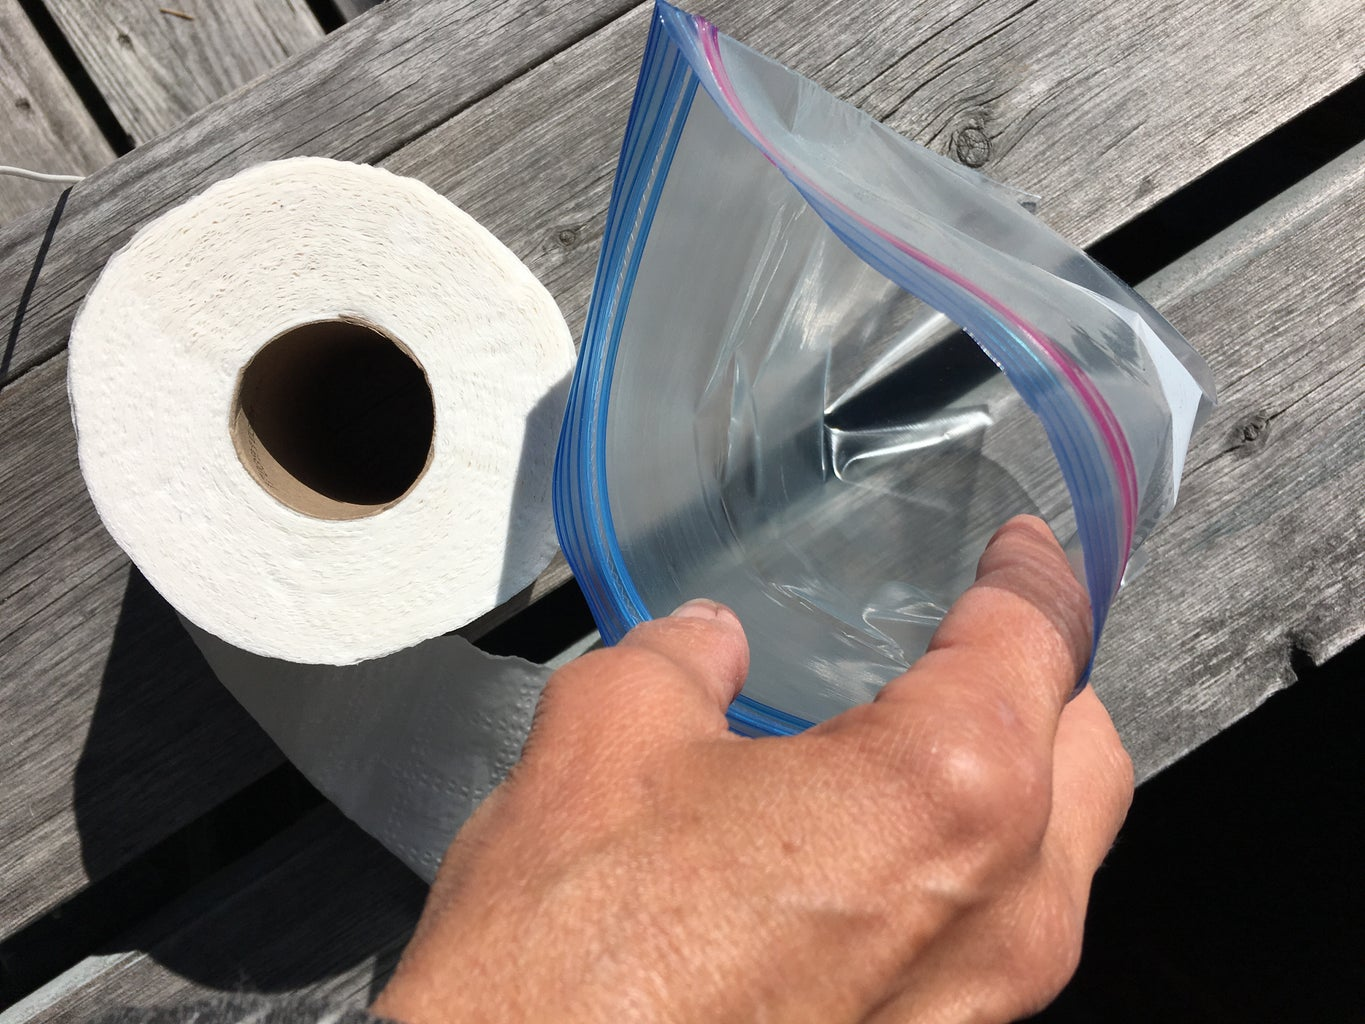 Put the Roll in the Bag